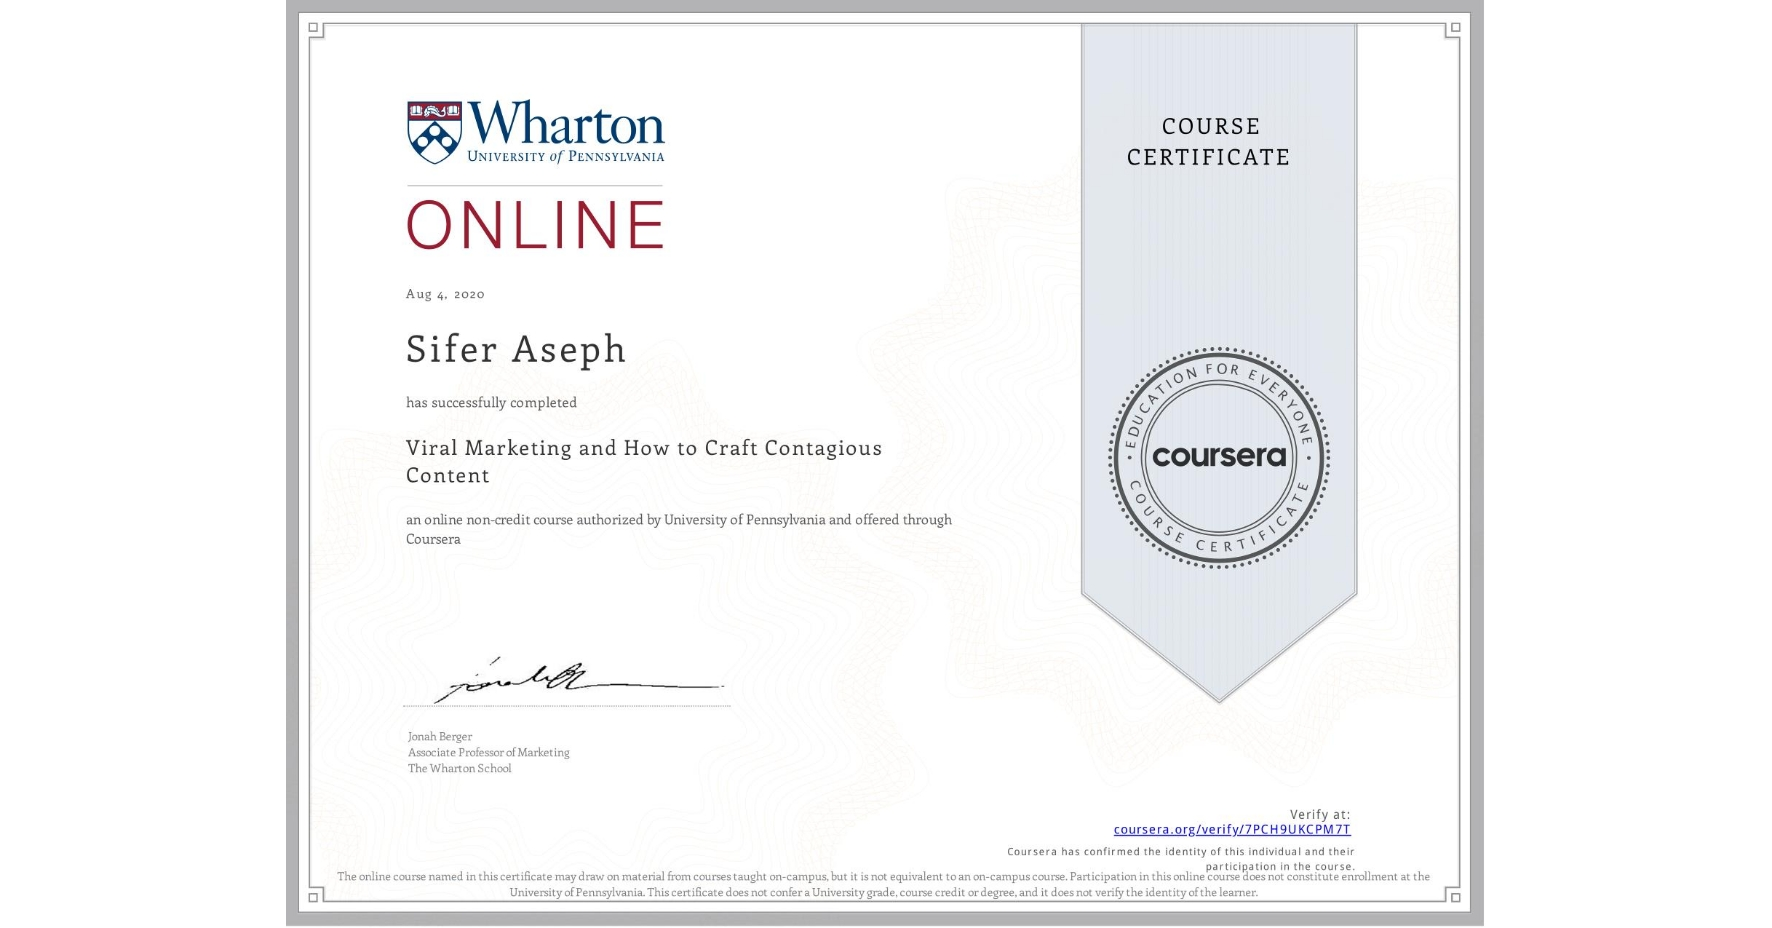 View certificate for Sifer Aseph, Viral Marketing and How to Craft Contagious Content, an online non-credit course authorized by University of Pennsylvania and offered through Coursera